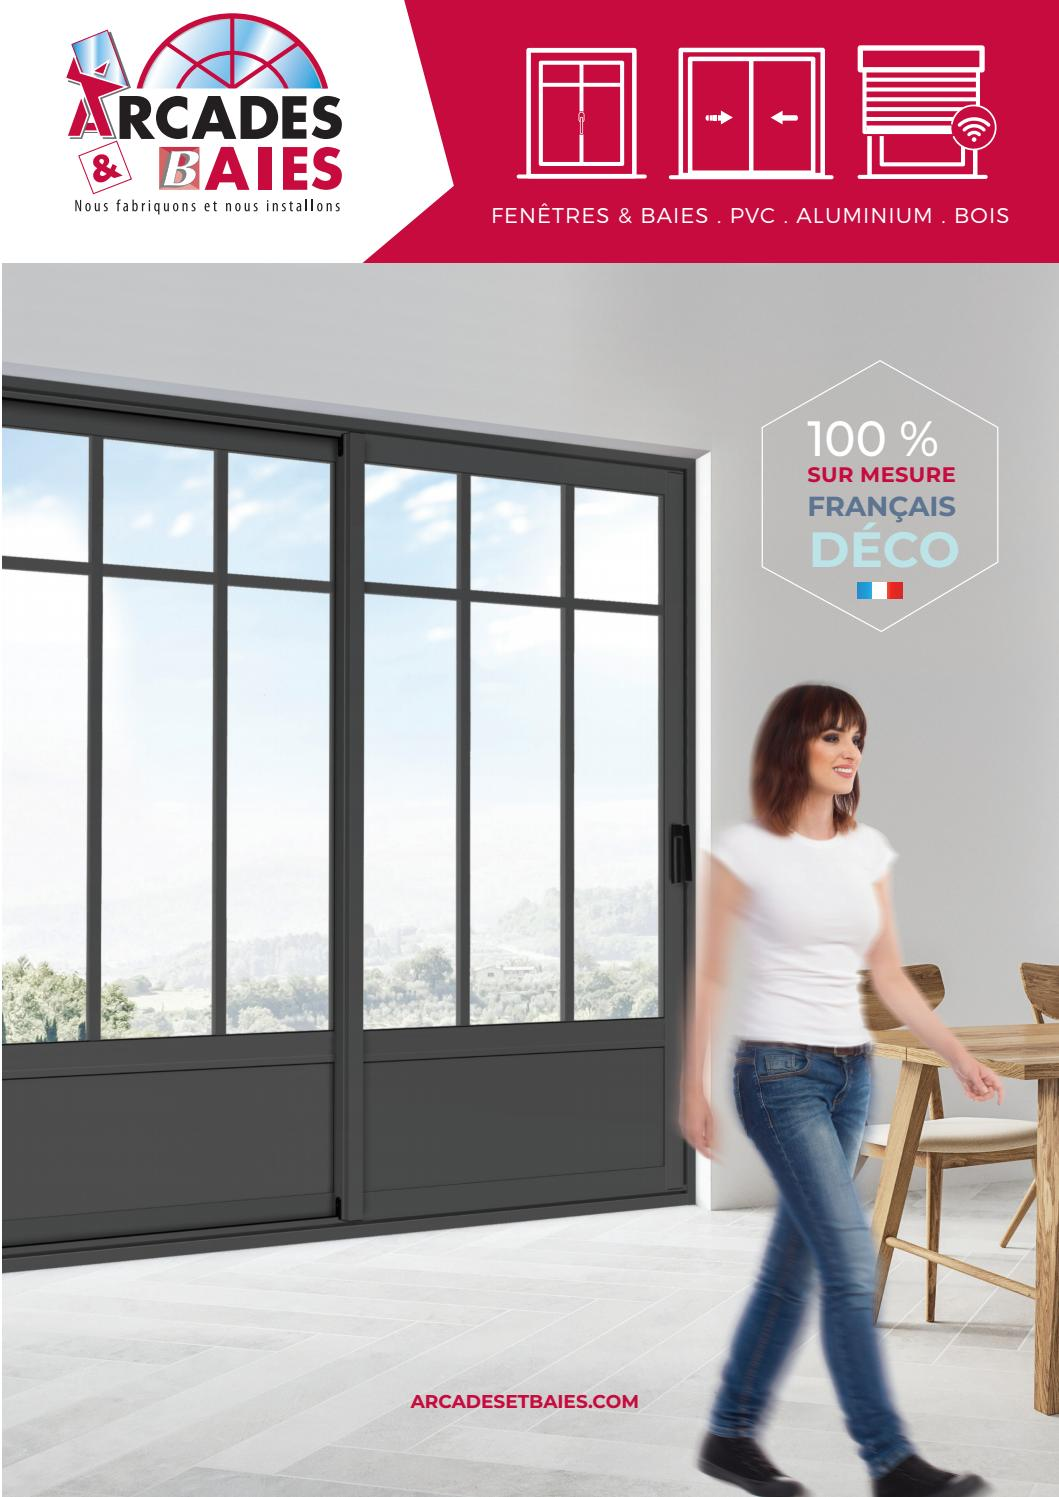 Fenetre Coulissante 140 X 80 Catalogue Menuiseries Arcades Baies By Forlis Issuu